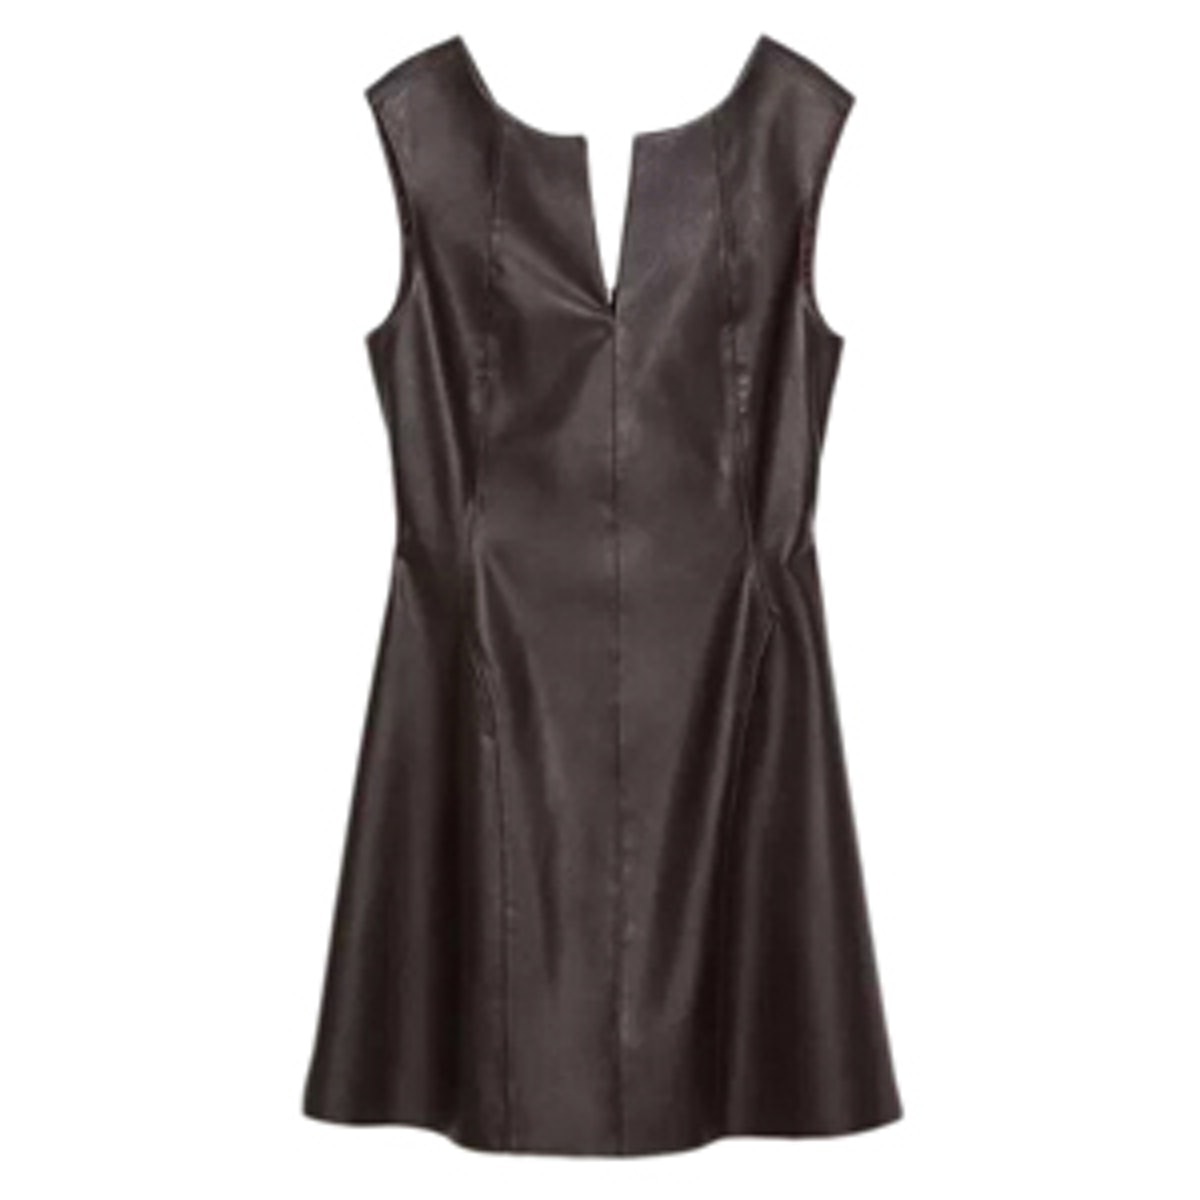 Brown Leather Dress